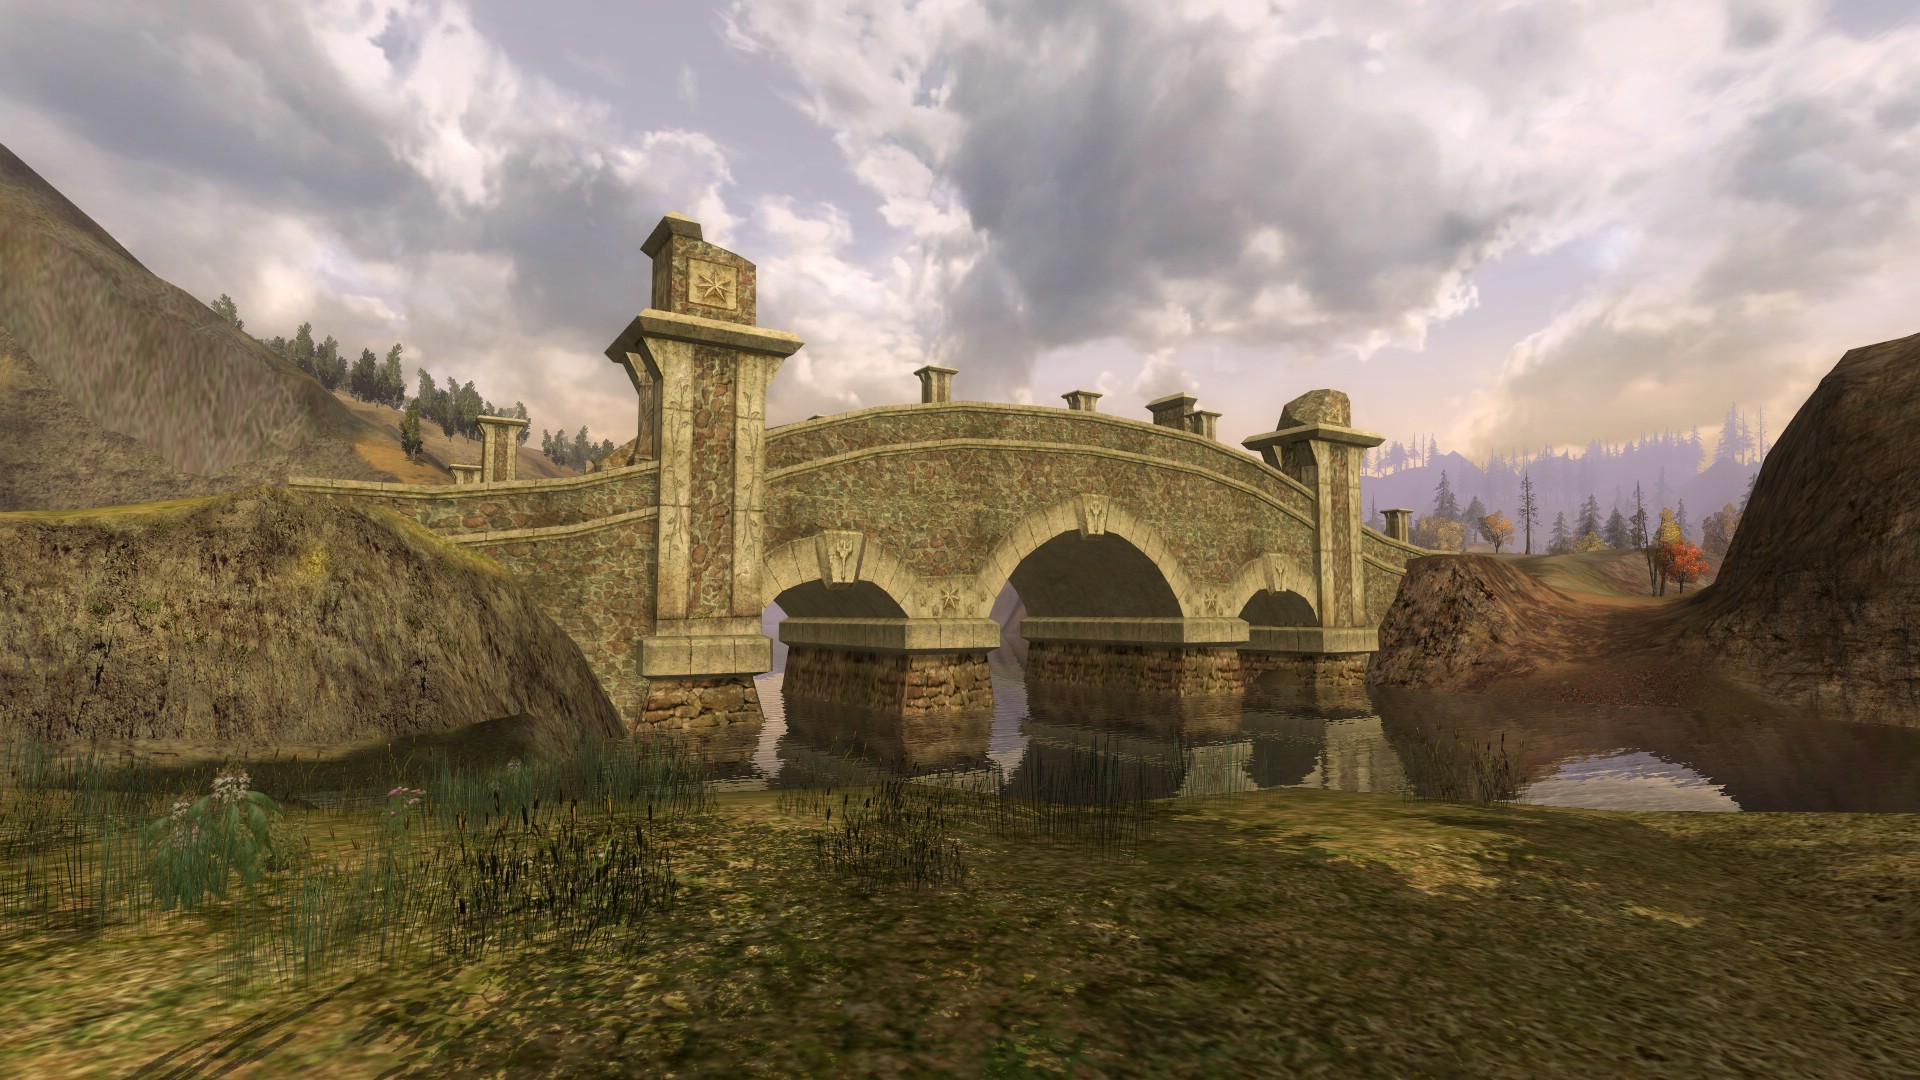 Lord of the Rings Online - Last Bridge between the human and elvish world!